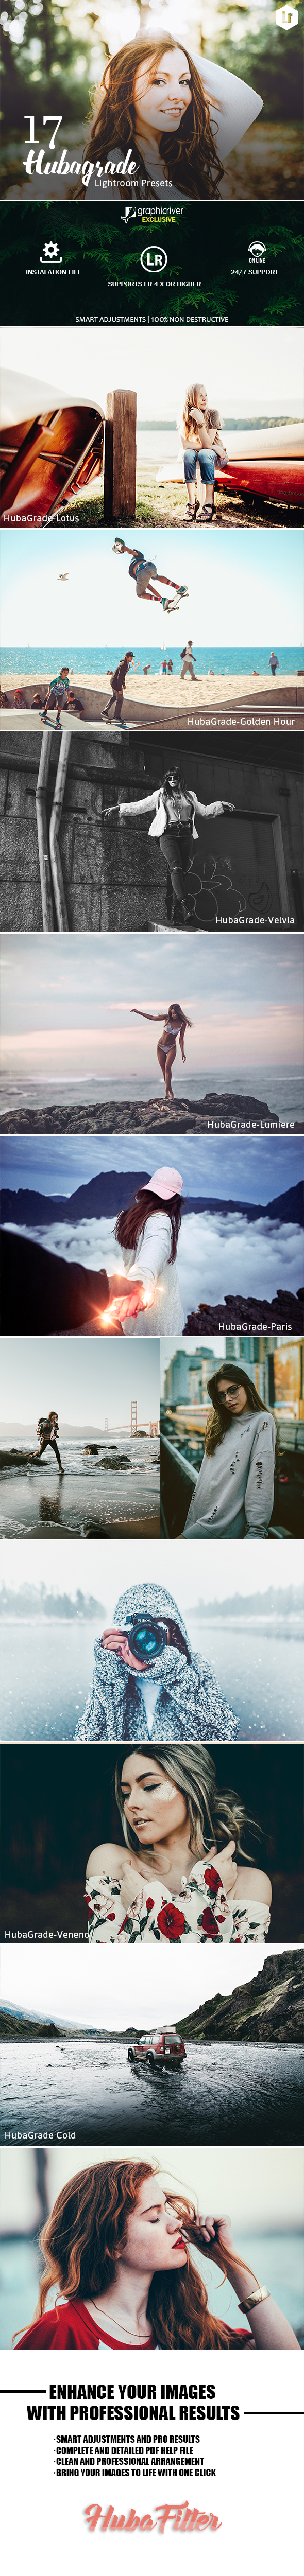 GraphicRiver 17 HubaGrade Lightroom Presets 21006755